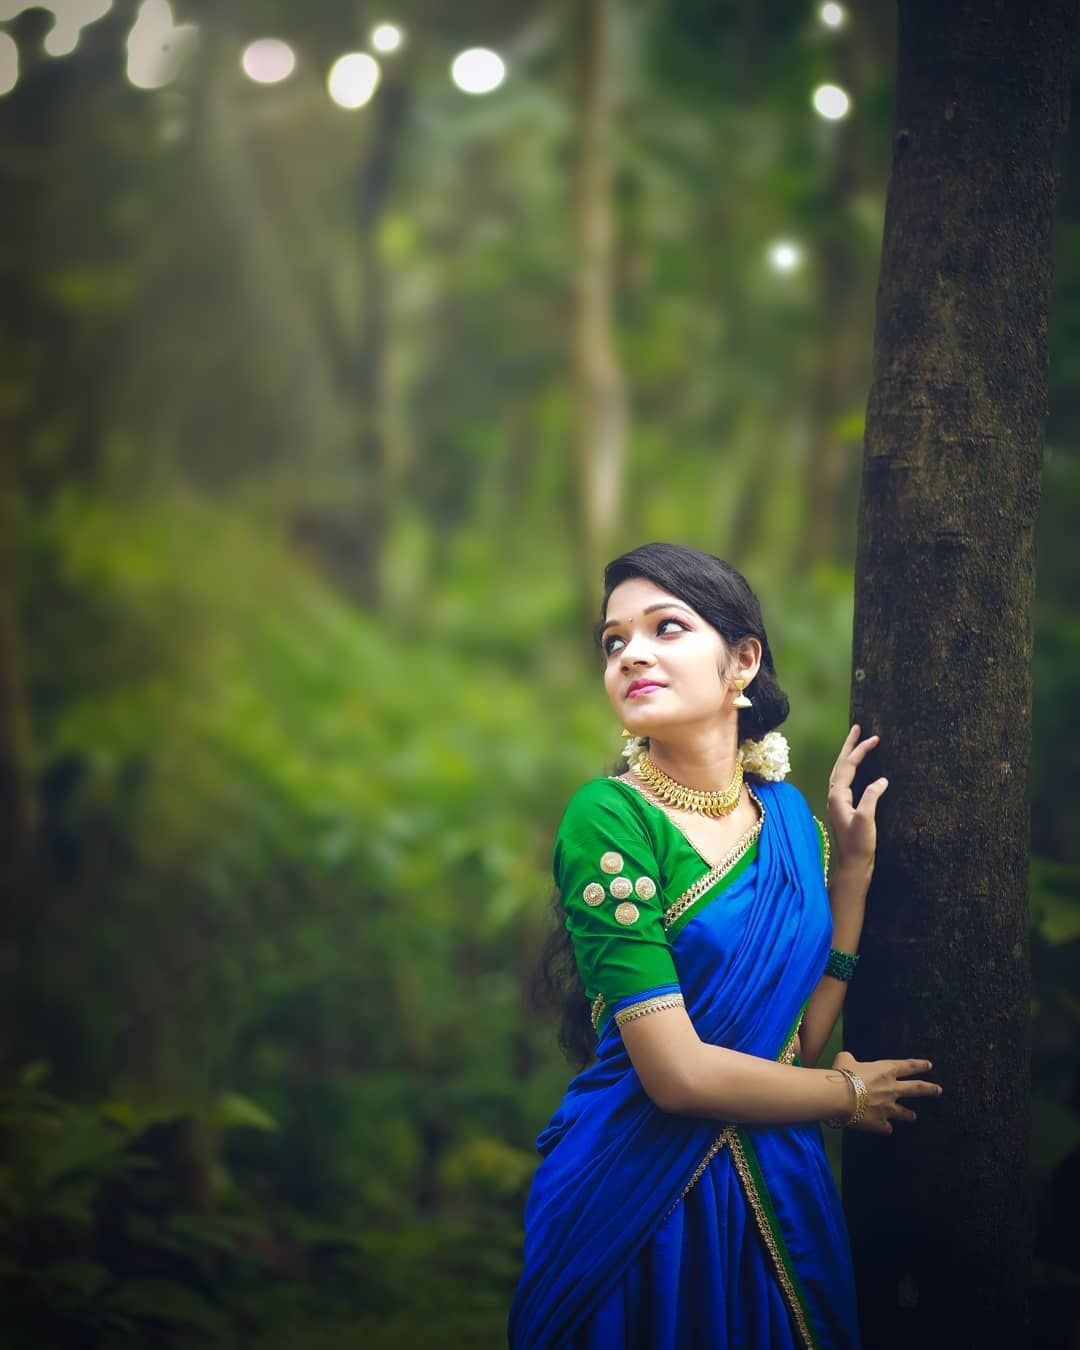 Image May Contain One Or More People People Standing And Outdoor Indian Photoshoot Girl Photo Poses Girl Photography